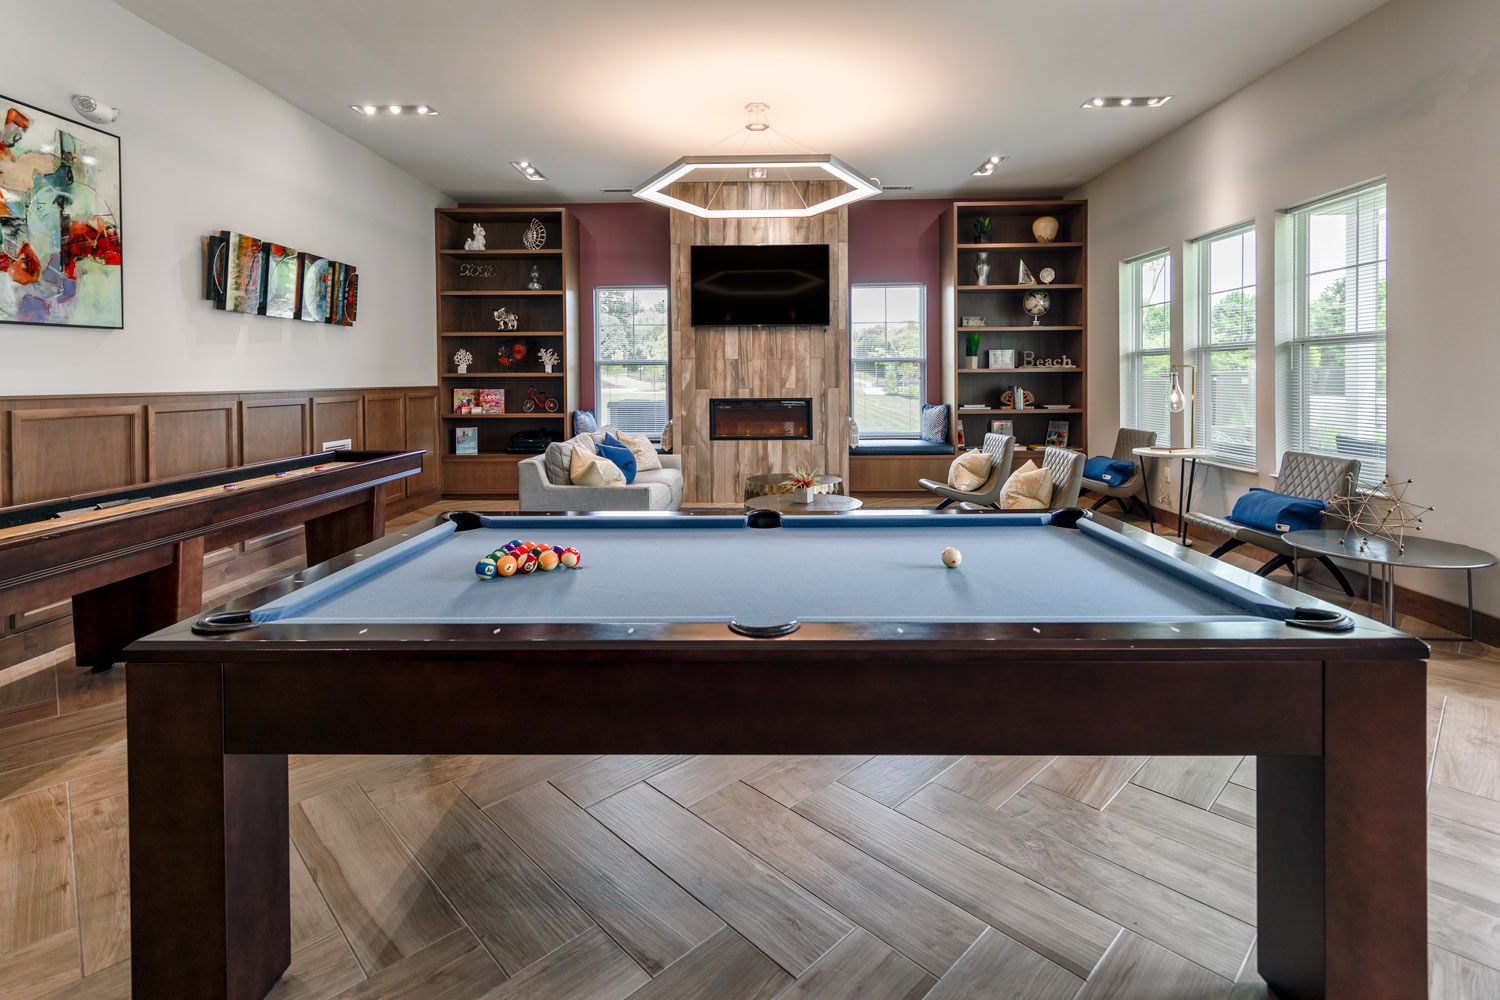 clubhouse with seating area, billiards, shuffleboard, fireplace, flat screen tv and large bookshelves - newark de luxury apartments